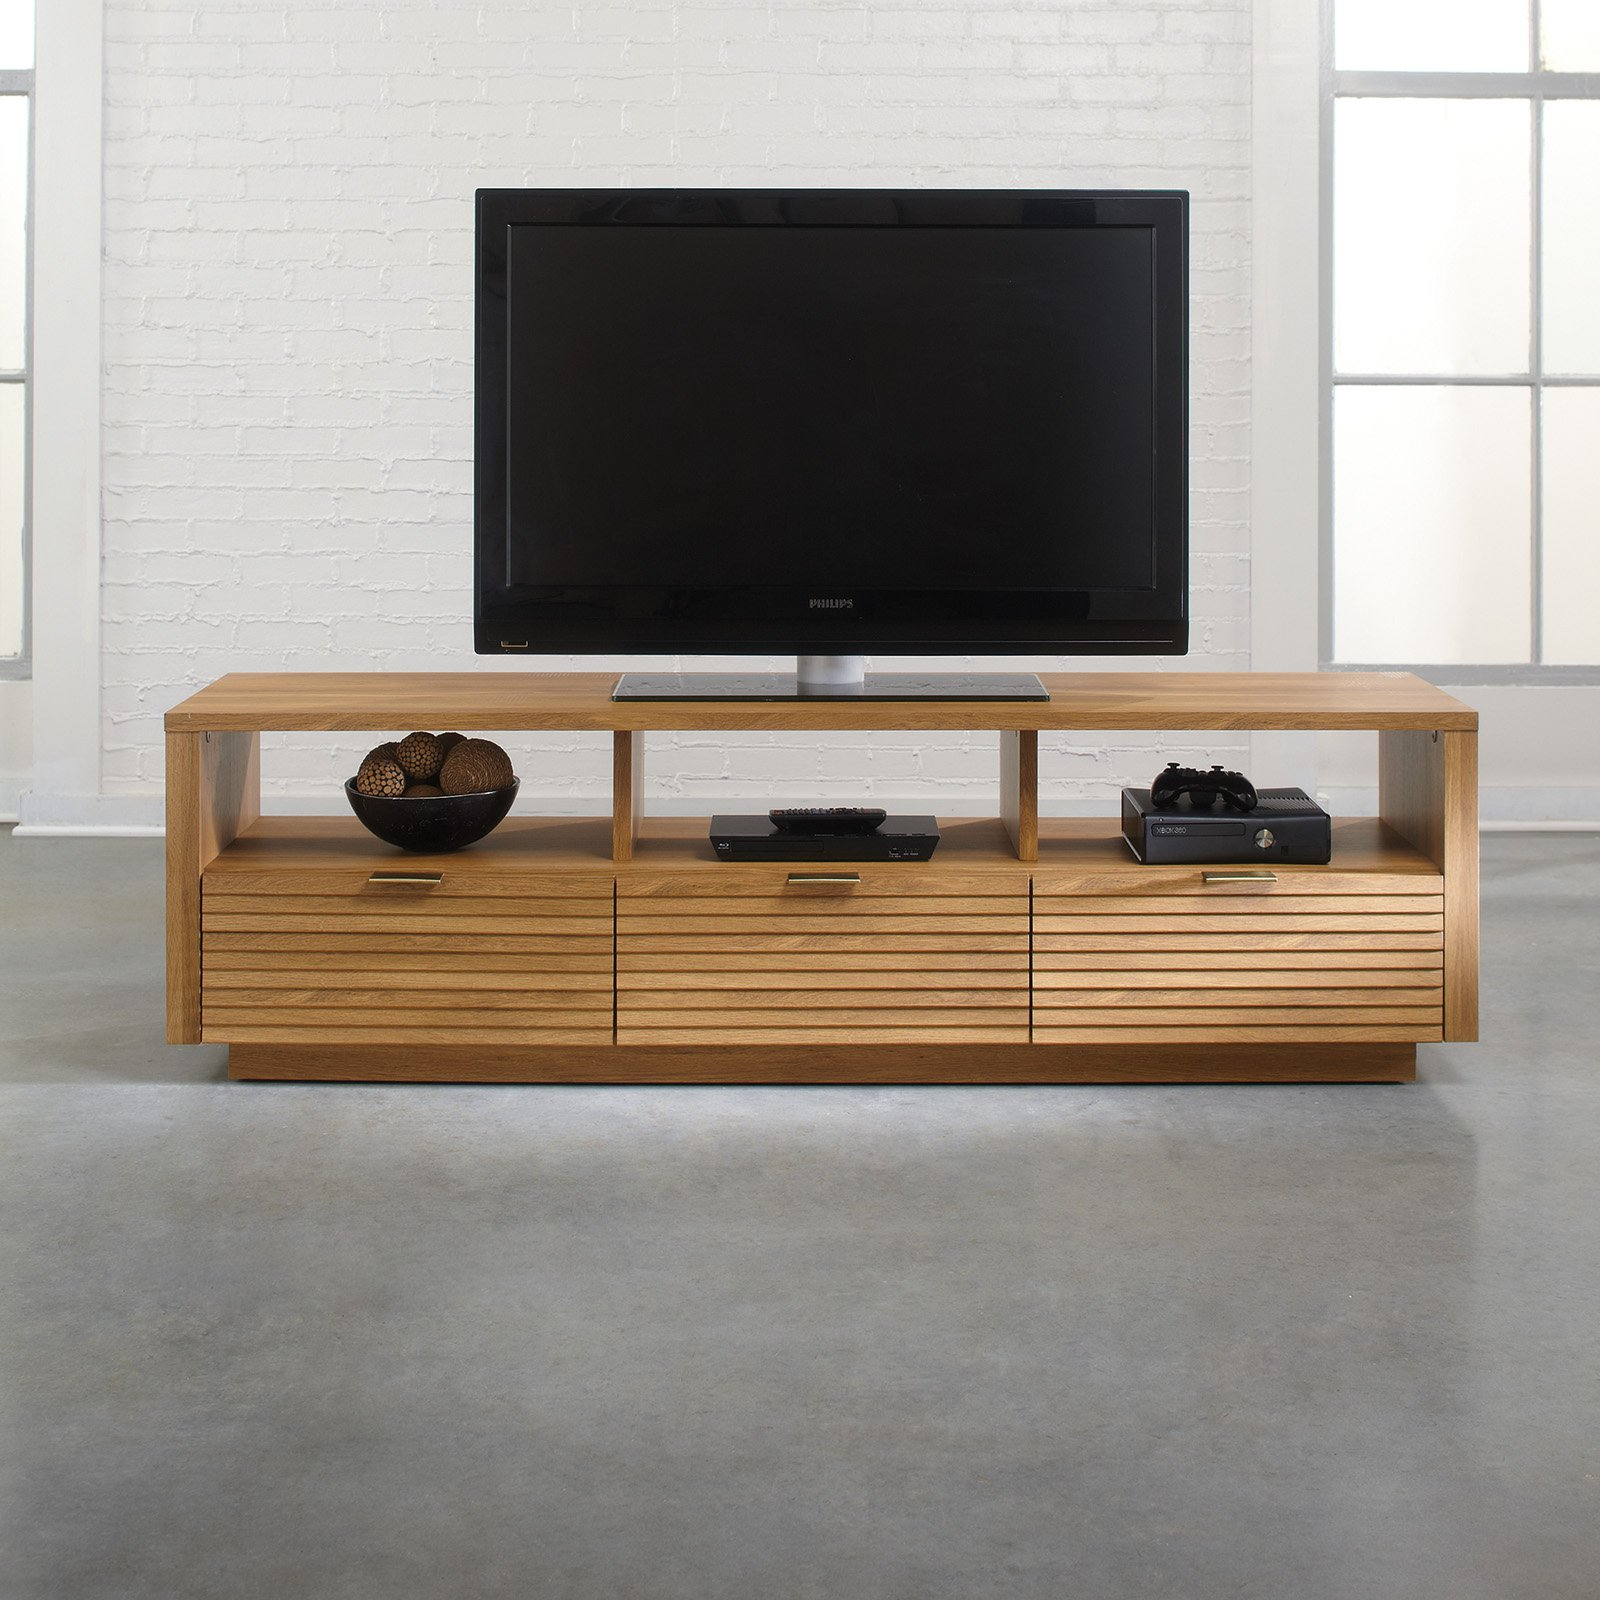 tv stands from walmart sauder august hill tv stand sauder tv stands - Sauder Tv Stands